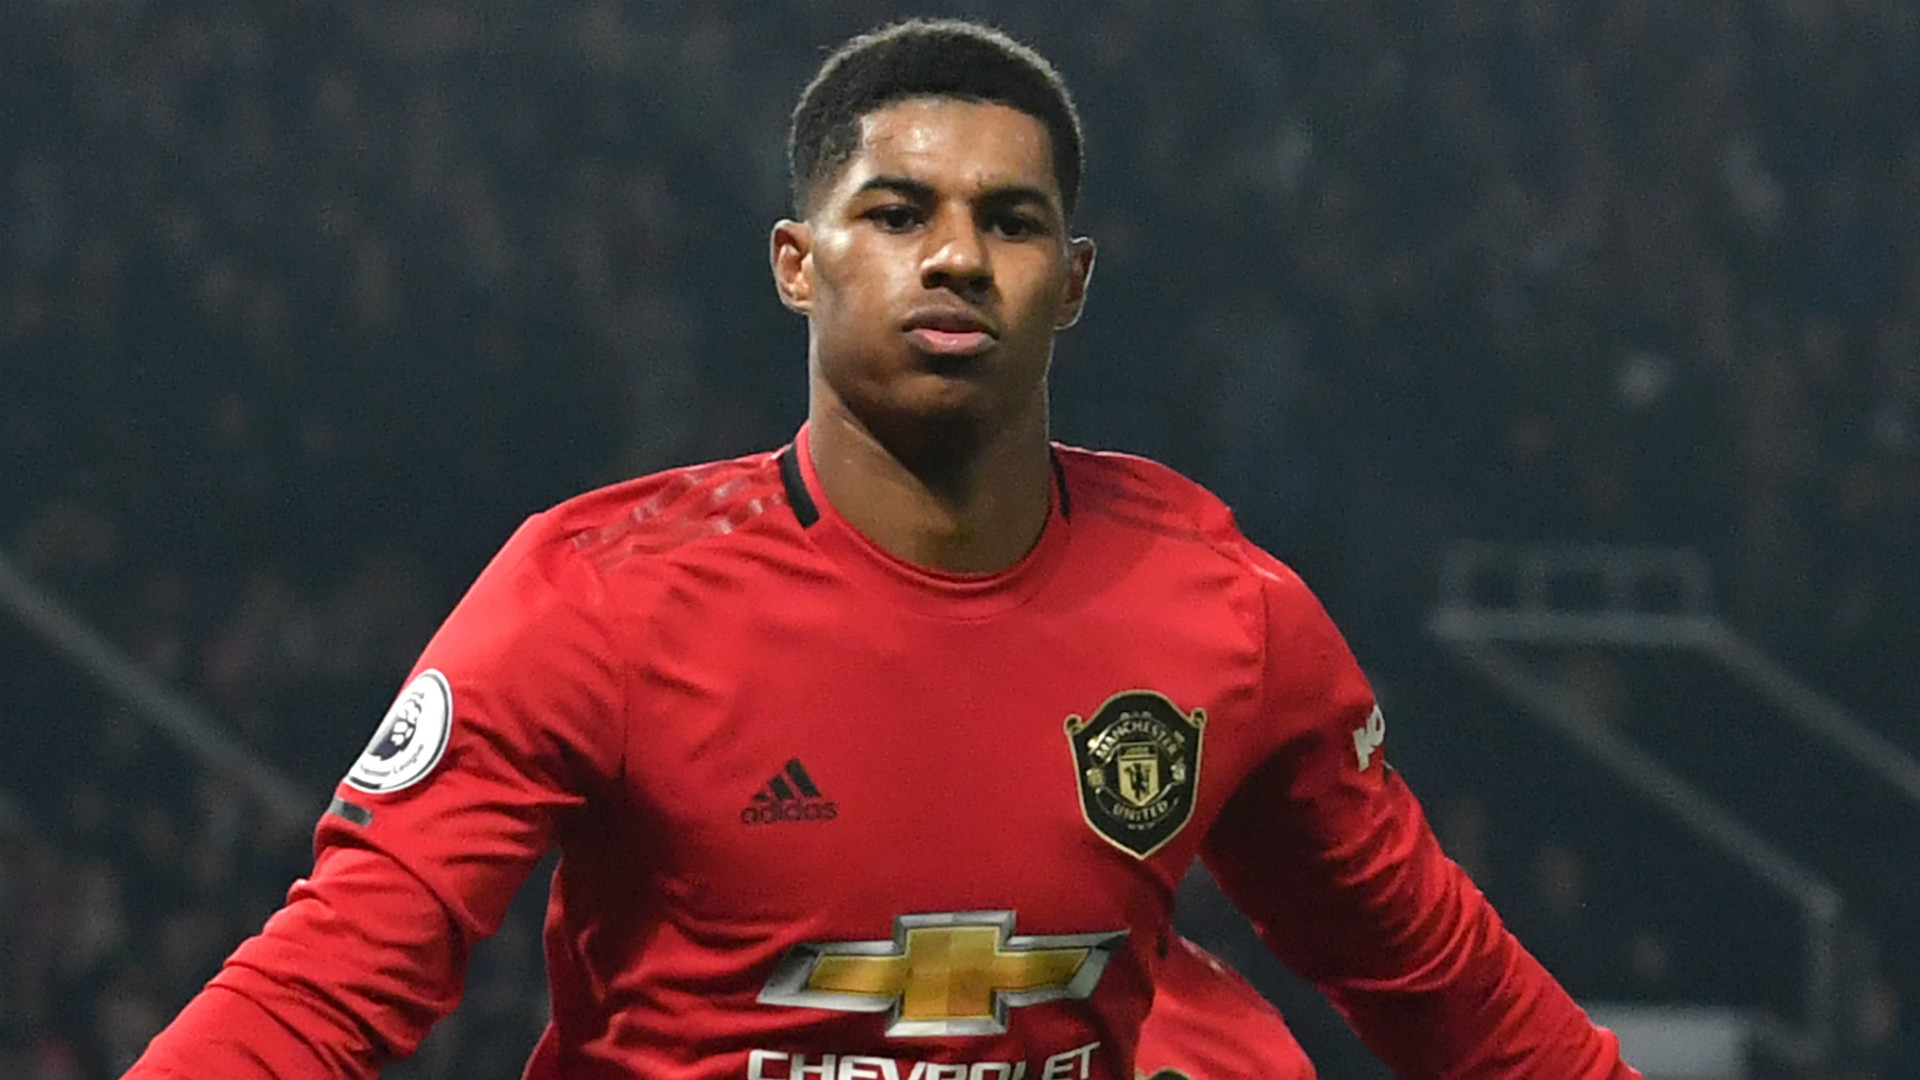 'Rashford has everything to have a career at the highest level' - Man Utd striker starting to fulfil potential, says Maguire